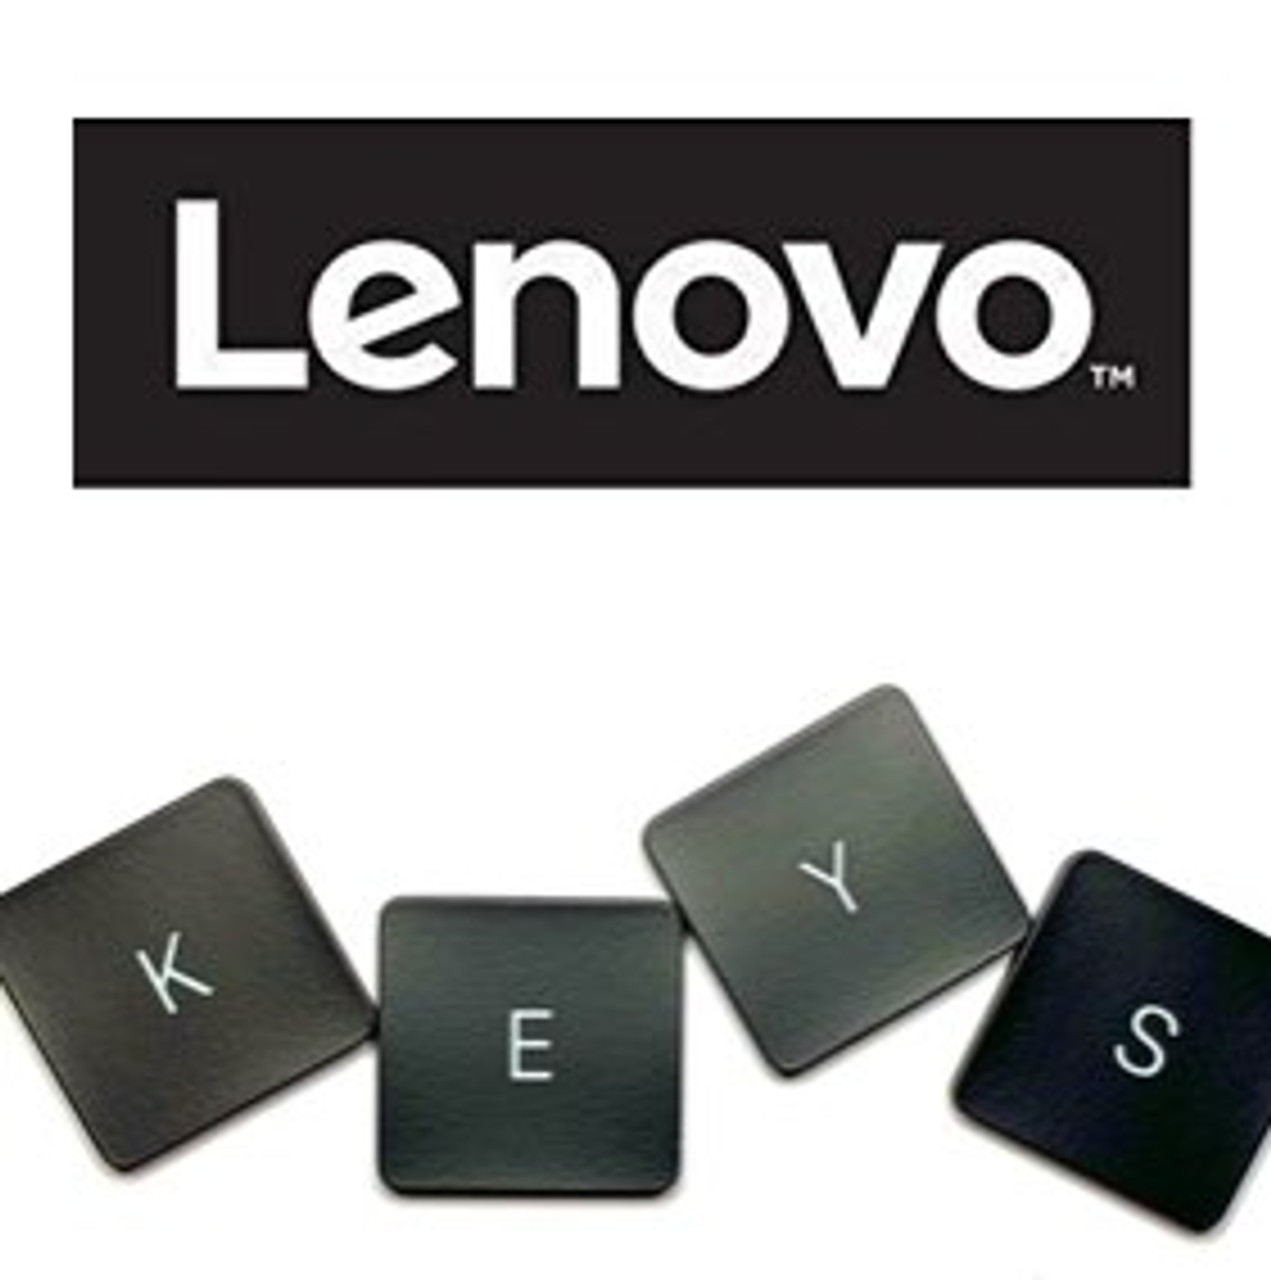 Lenovo X1 Carbon Laptop Keyboard Key Replacement (3rd Gen)